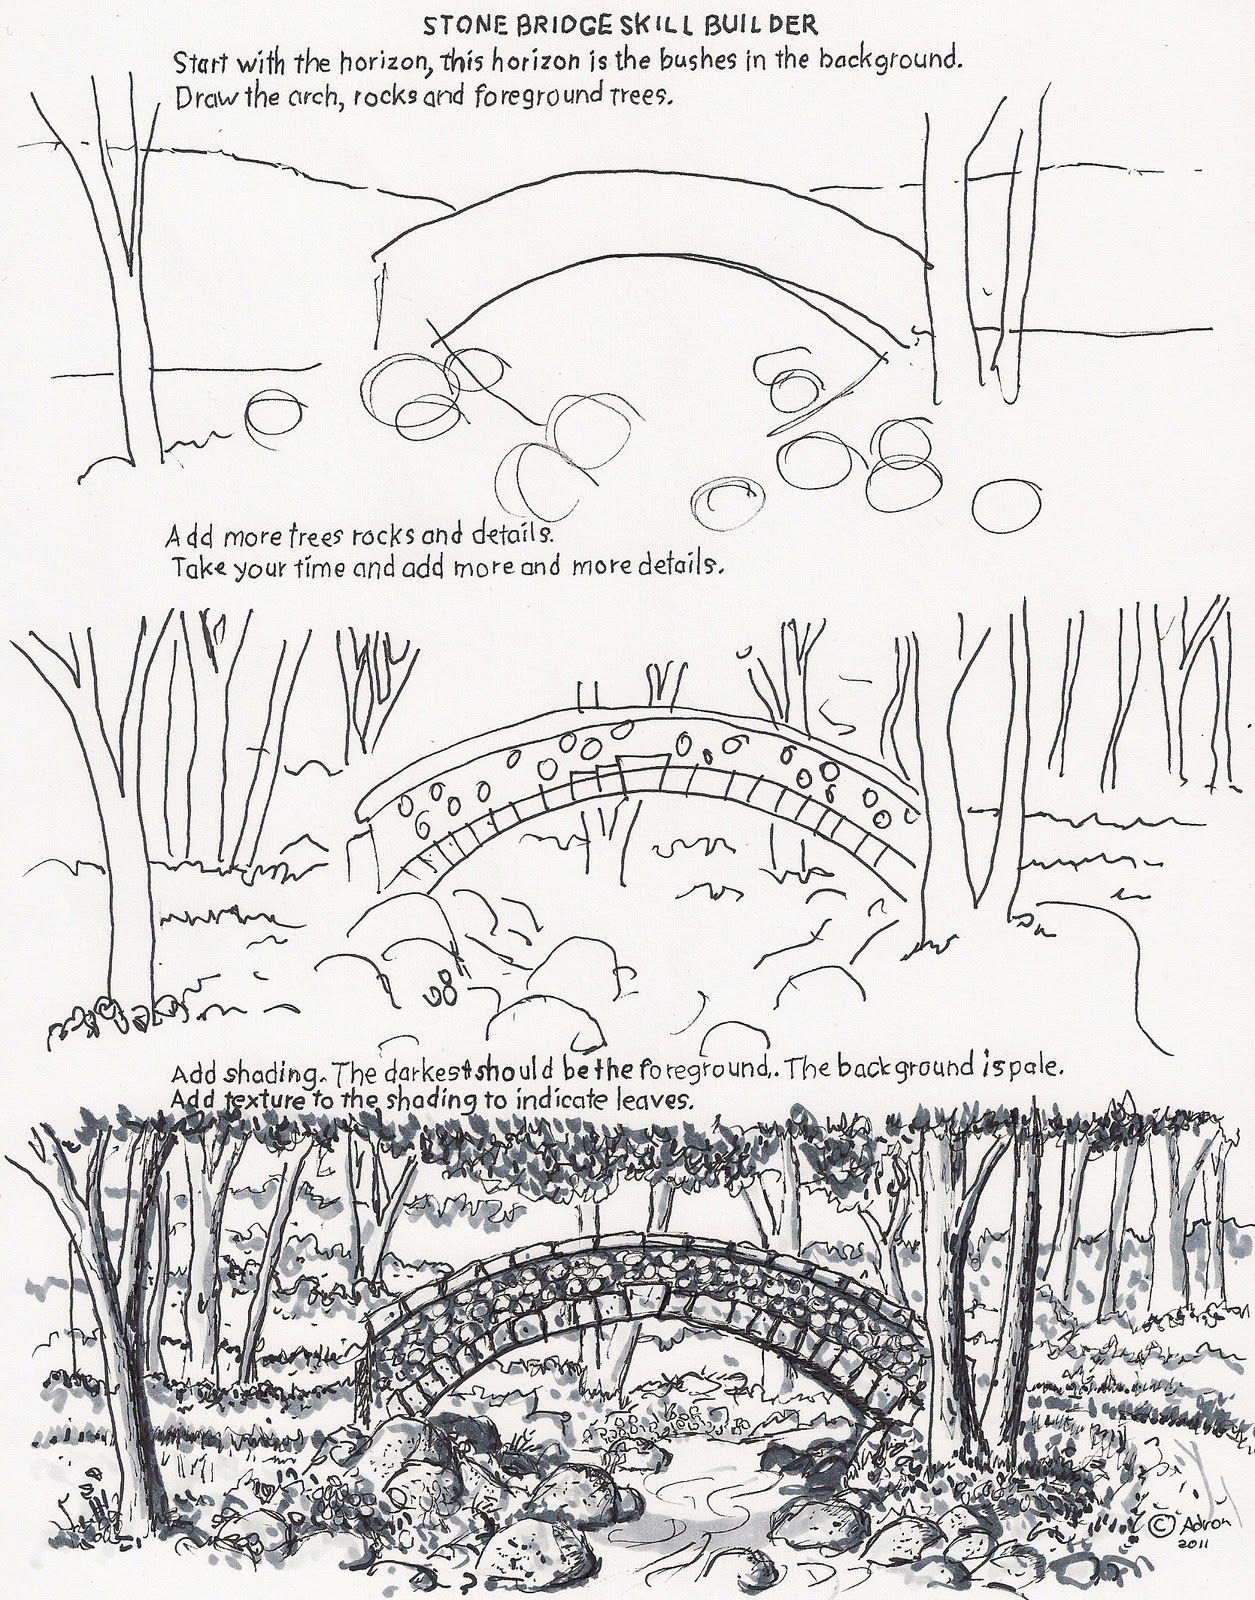 Worksheets How To Draw Worksheets how to draw worksheets for young artist a nice tree stone bridge httpdrawinglessonsfortheyoungartist blogspot com